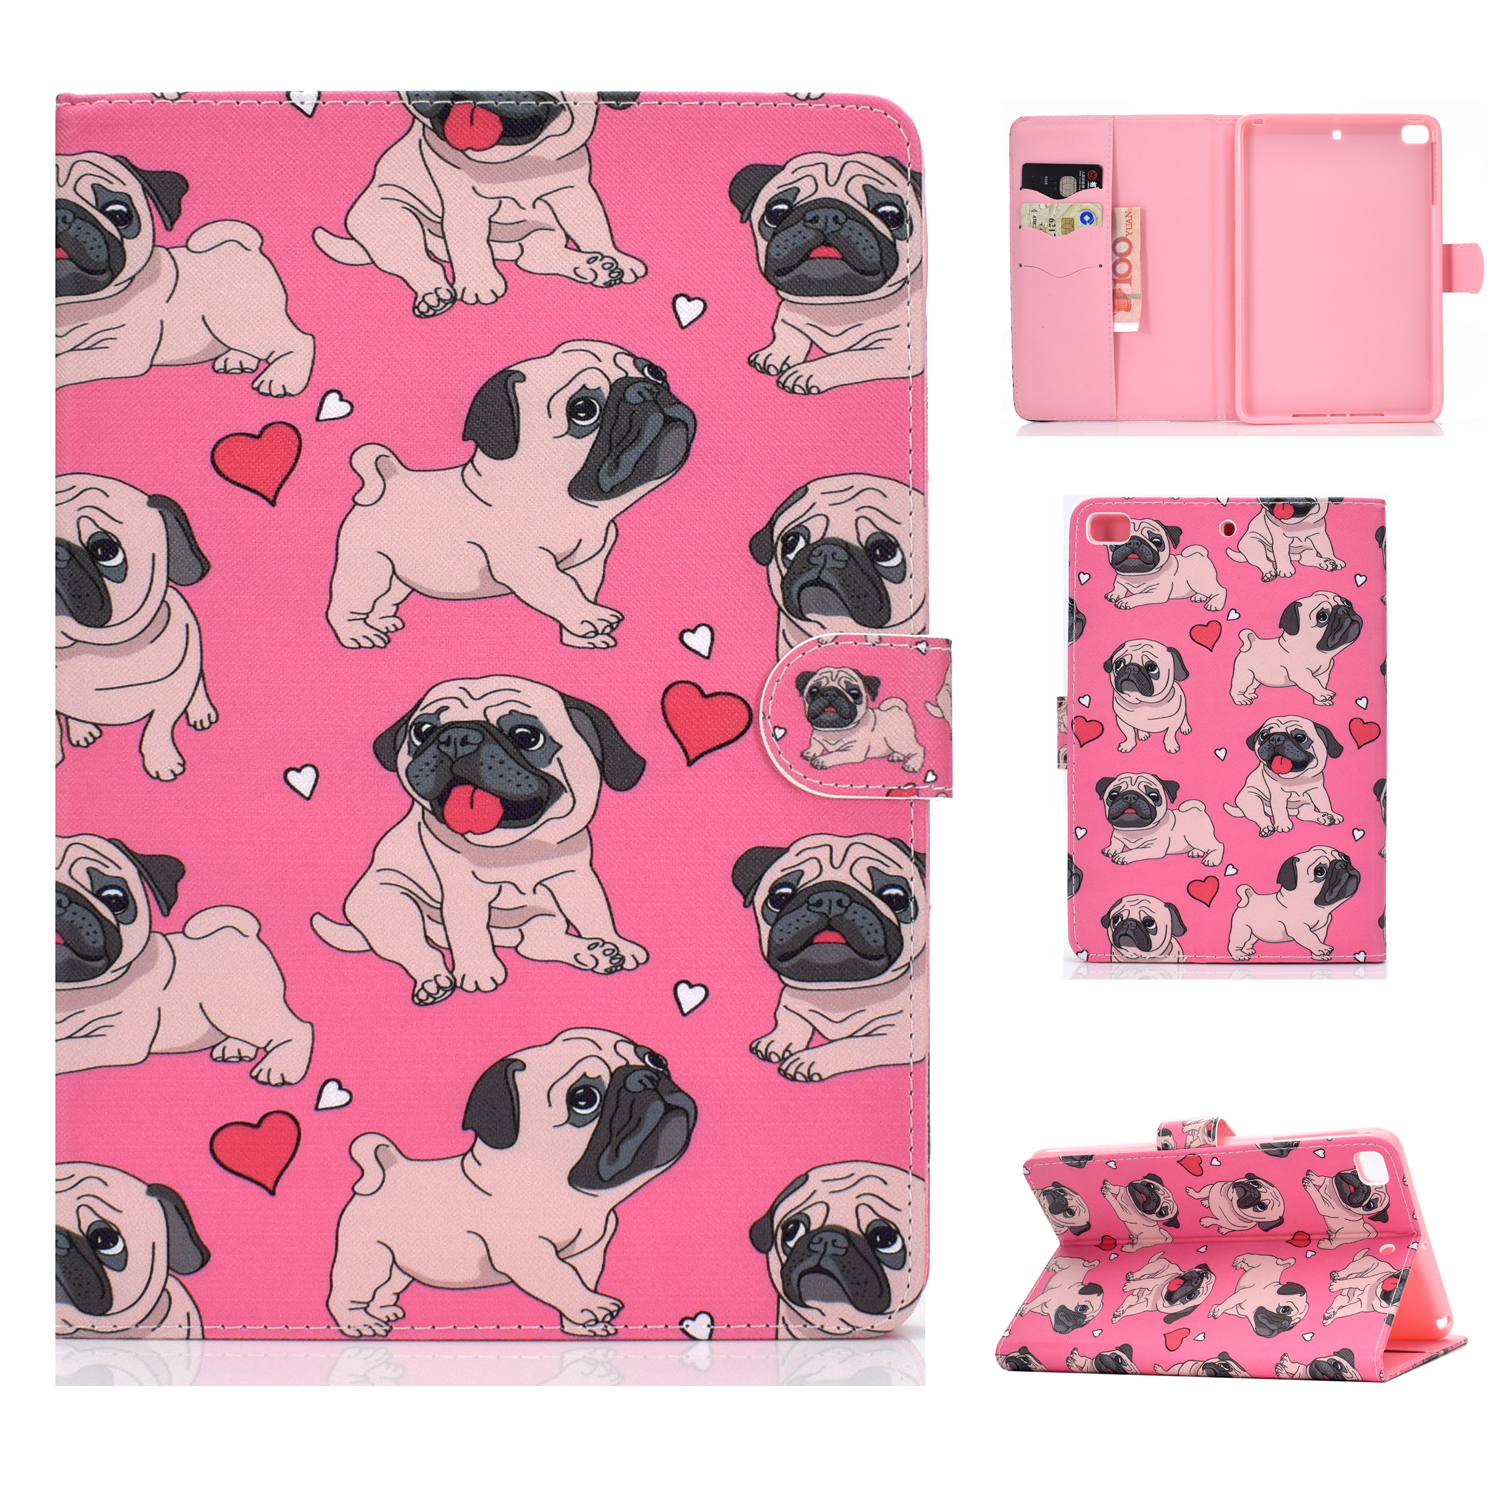 For iPad mini 1/2/3/4/5 Laptop Protective Case Frront Snap Color Painted Smart Stay PU Cover Caring dog